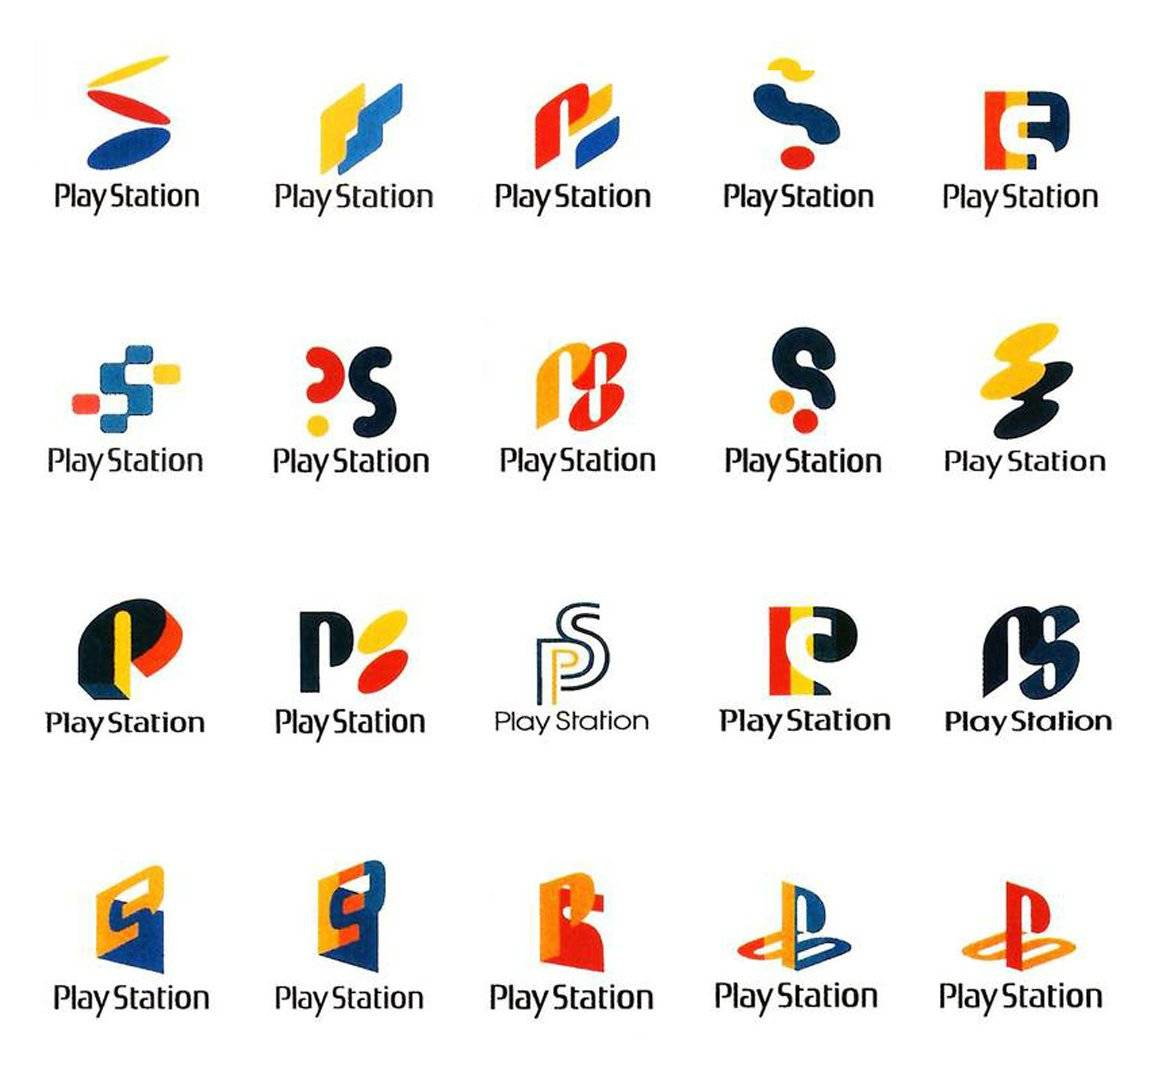 sony playstation 1 logo design ideas and concepts the logo smith rh imjustcreative com playstation 1 color playstation 1 logo sticker